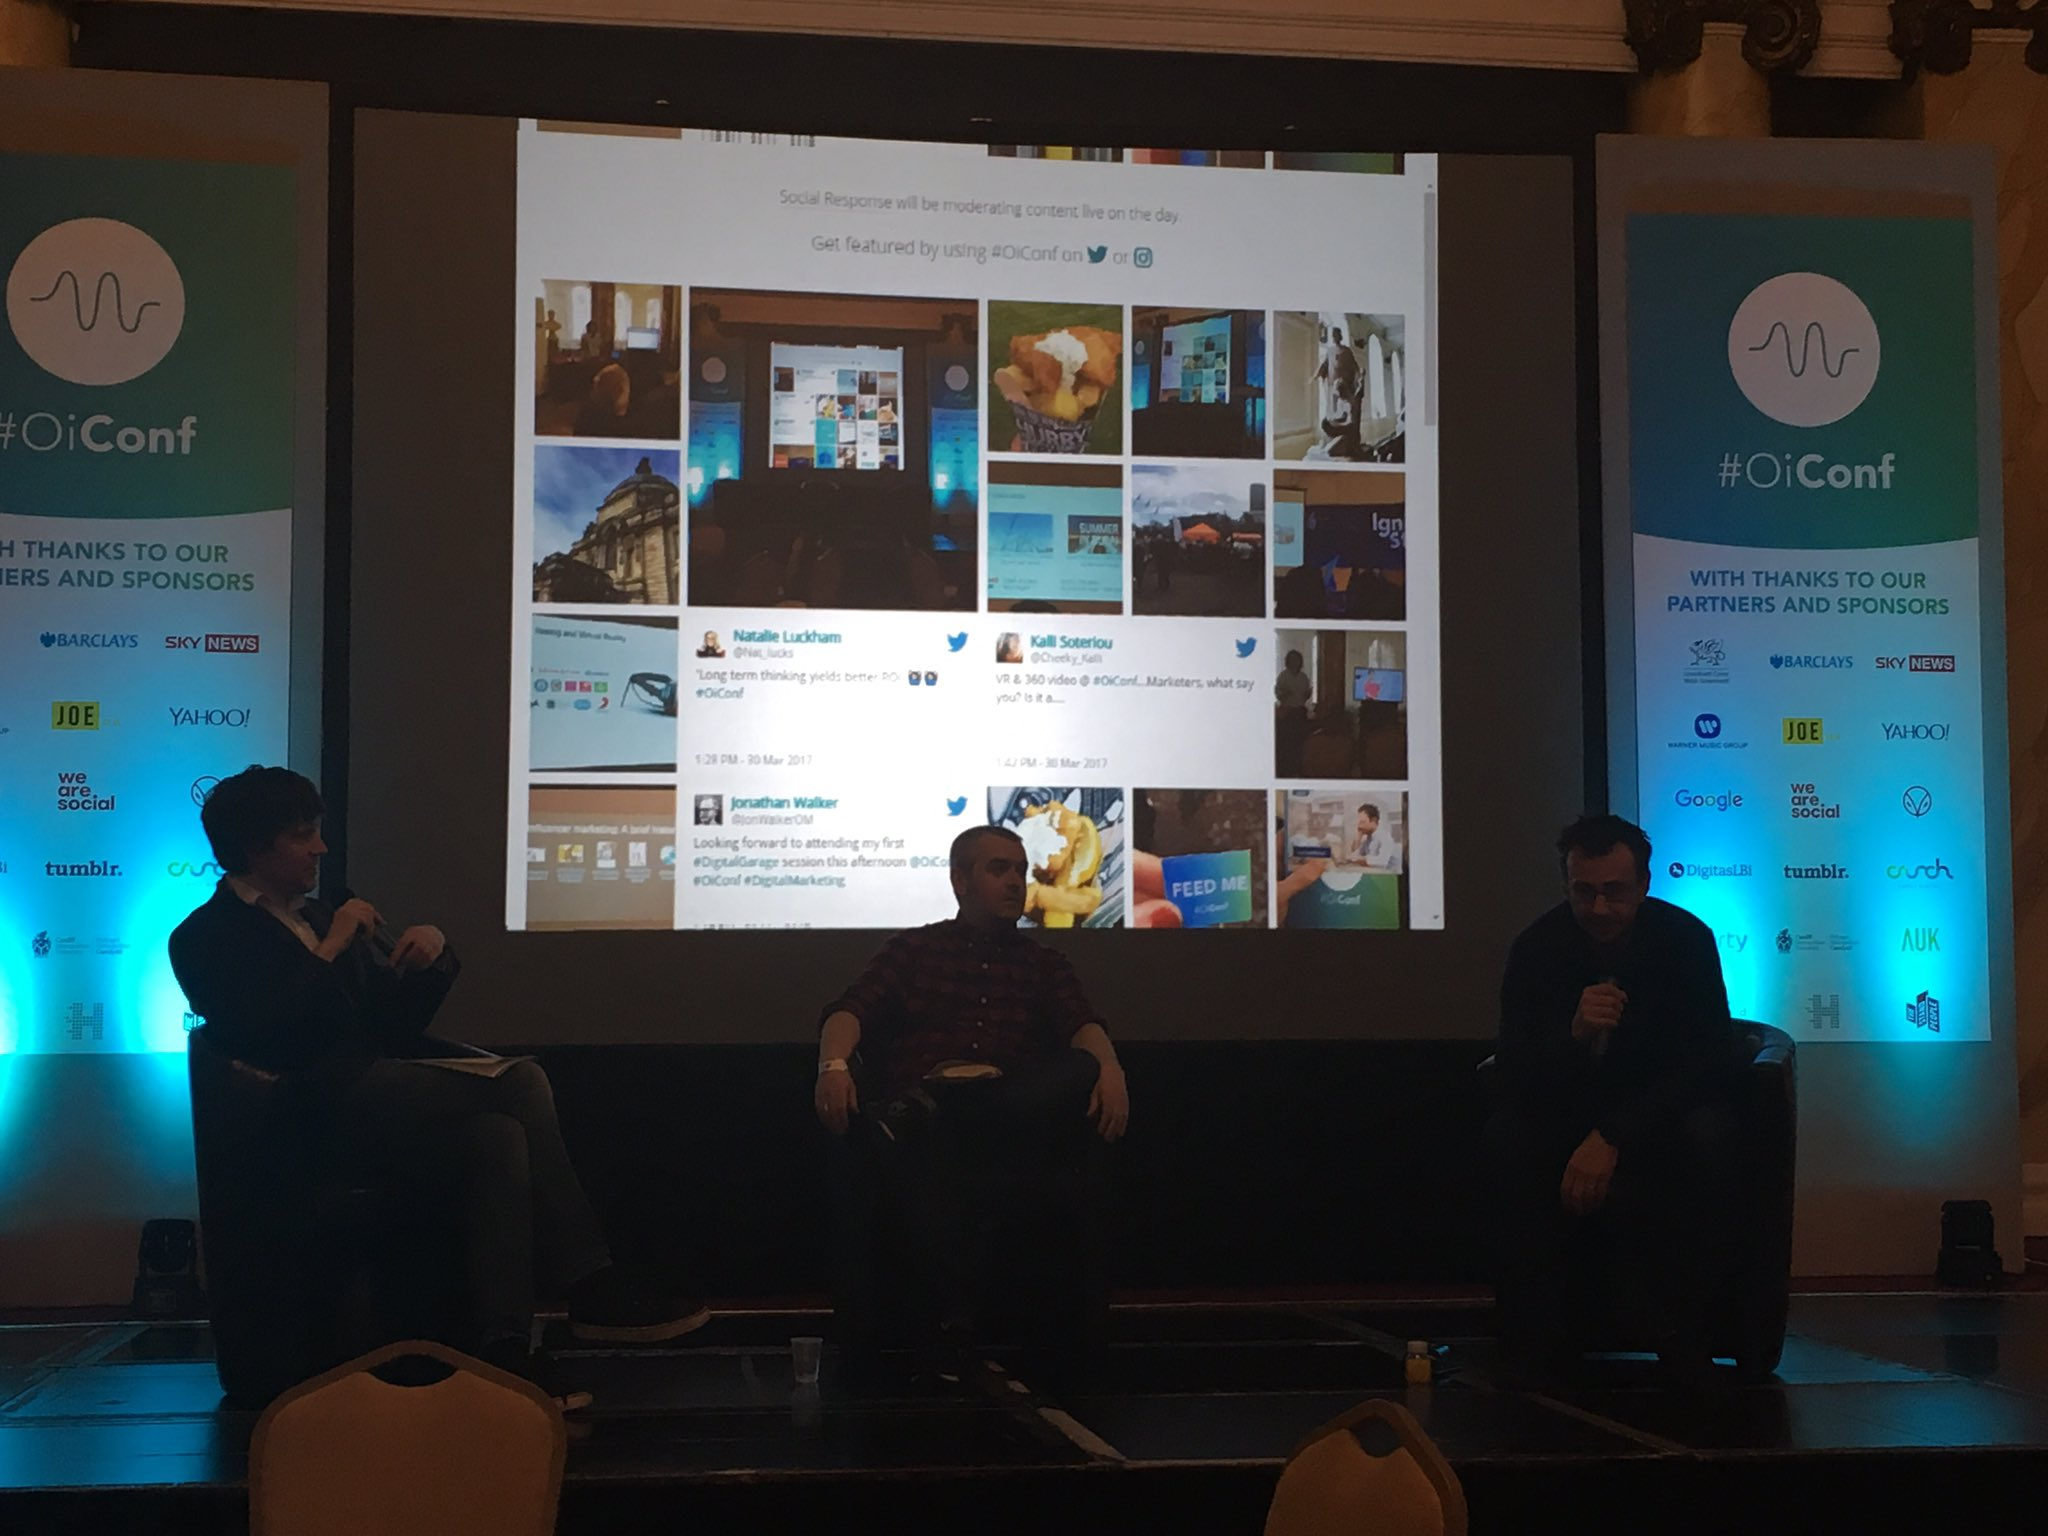 At the panel for #Fashion, #music and #digital disruption with Josh Saunders, David Hieatt and Martin Bryant #OiConf https://t.co/5o0cQvZZiO